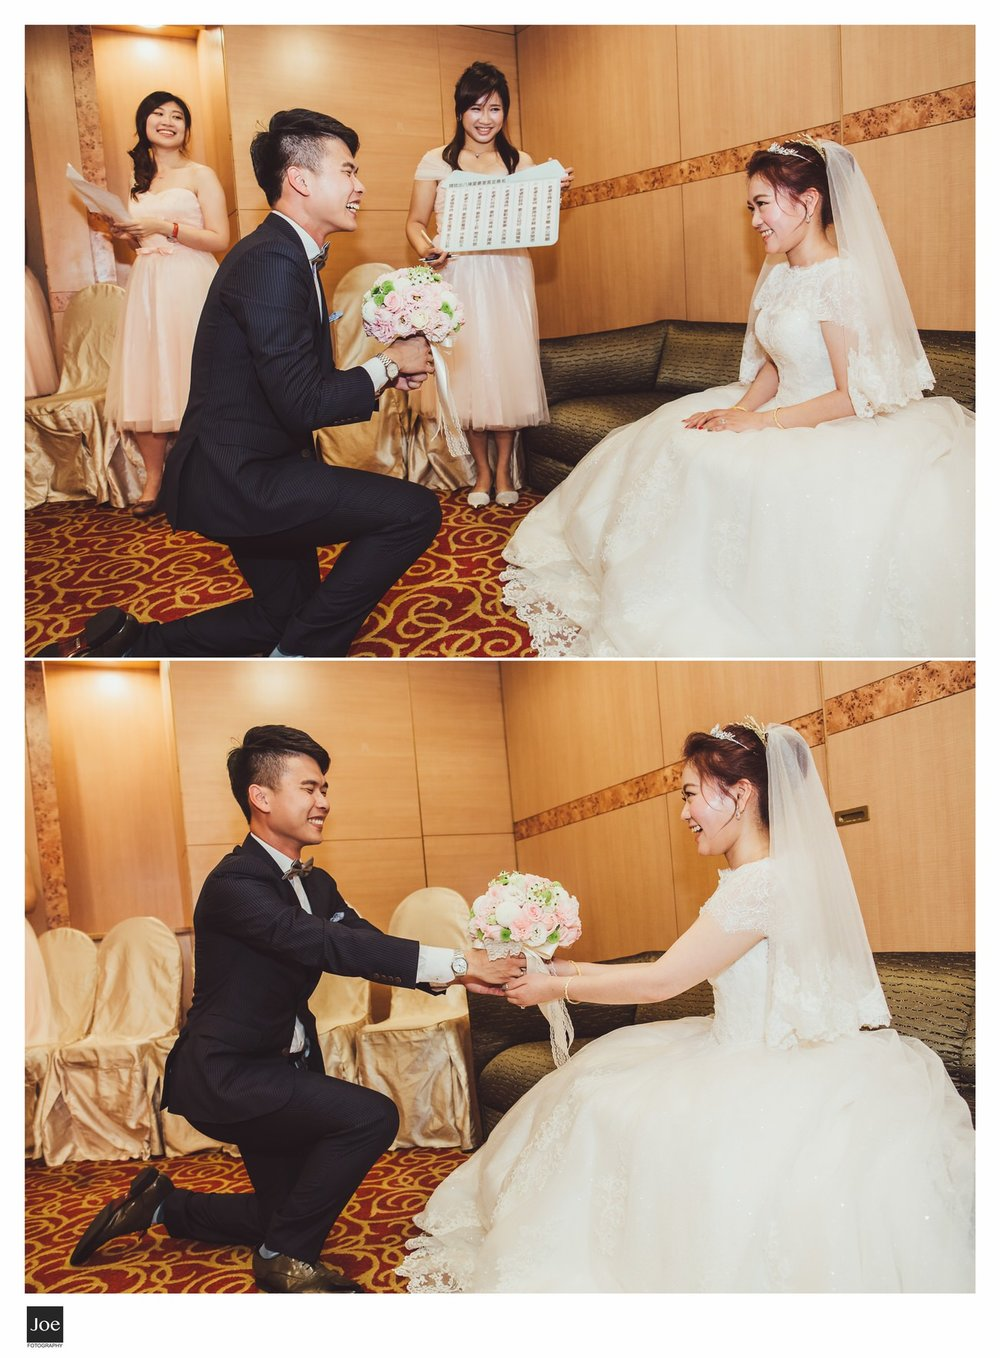 sunworld-dynasty-hotel-taipei-wedding-photo-joe-fotography-angel-jay-041.jpg